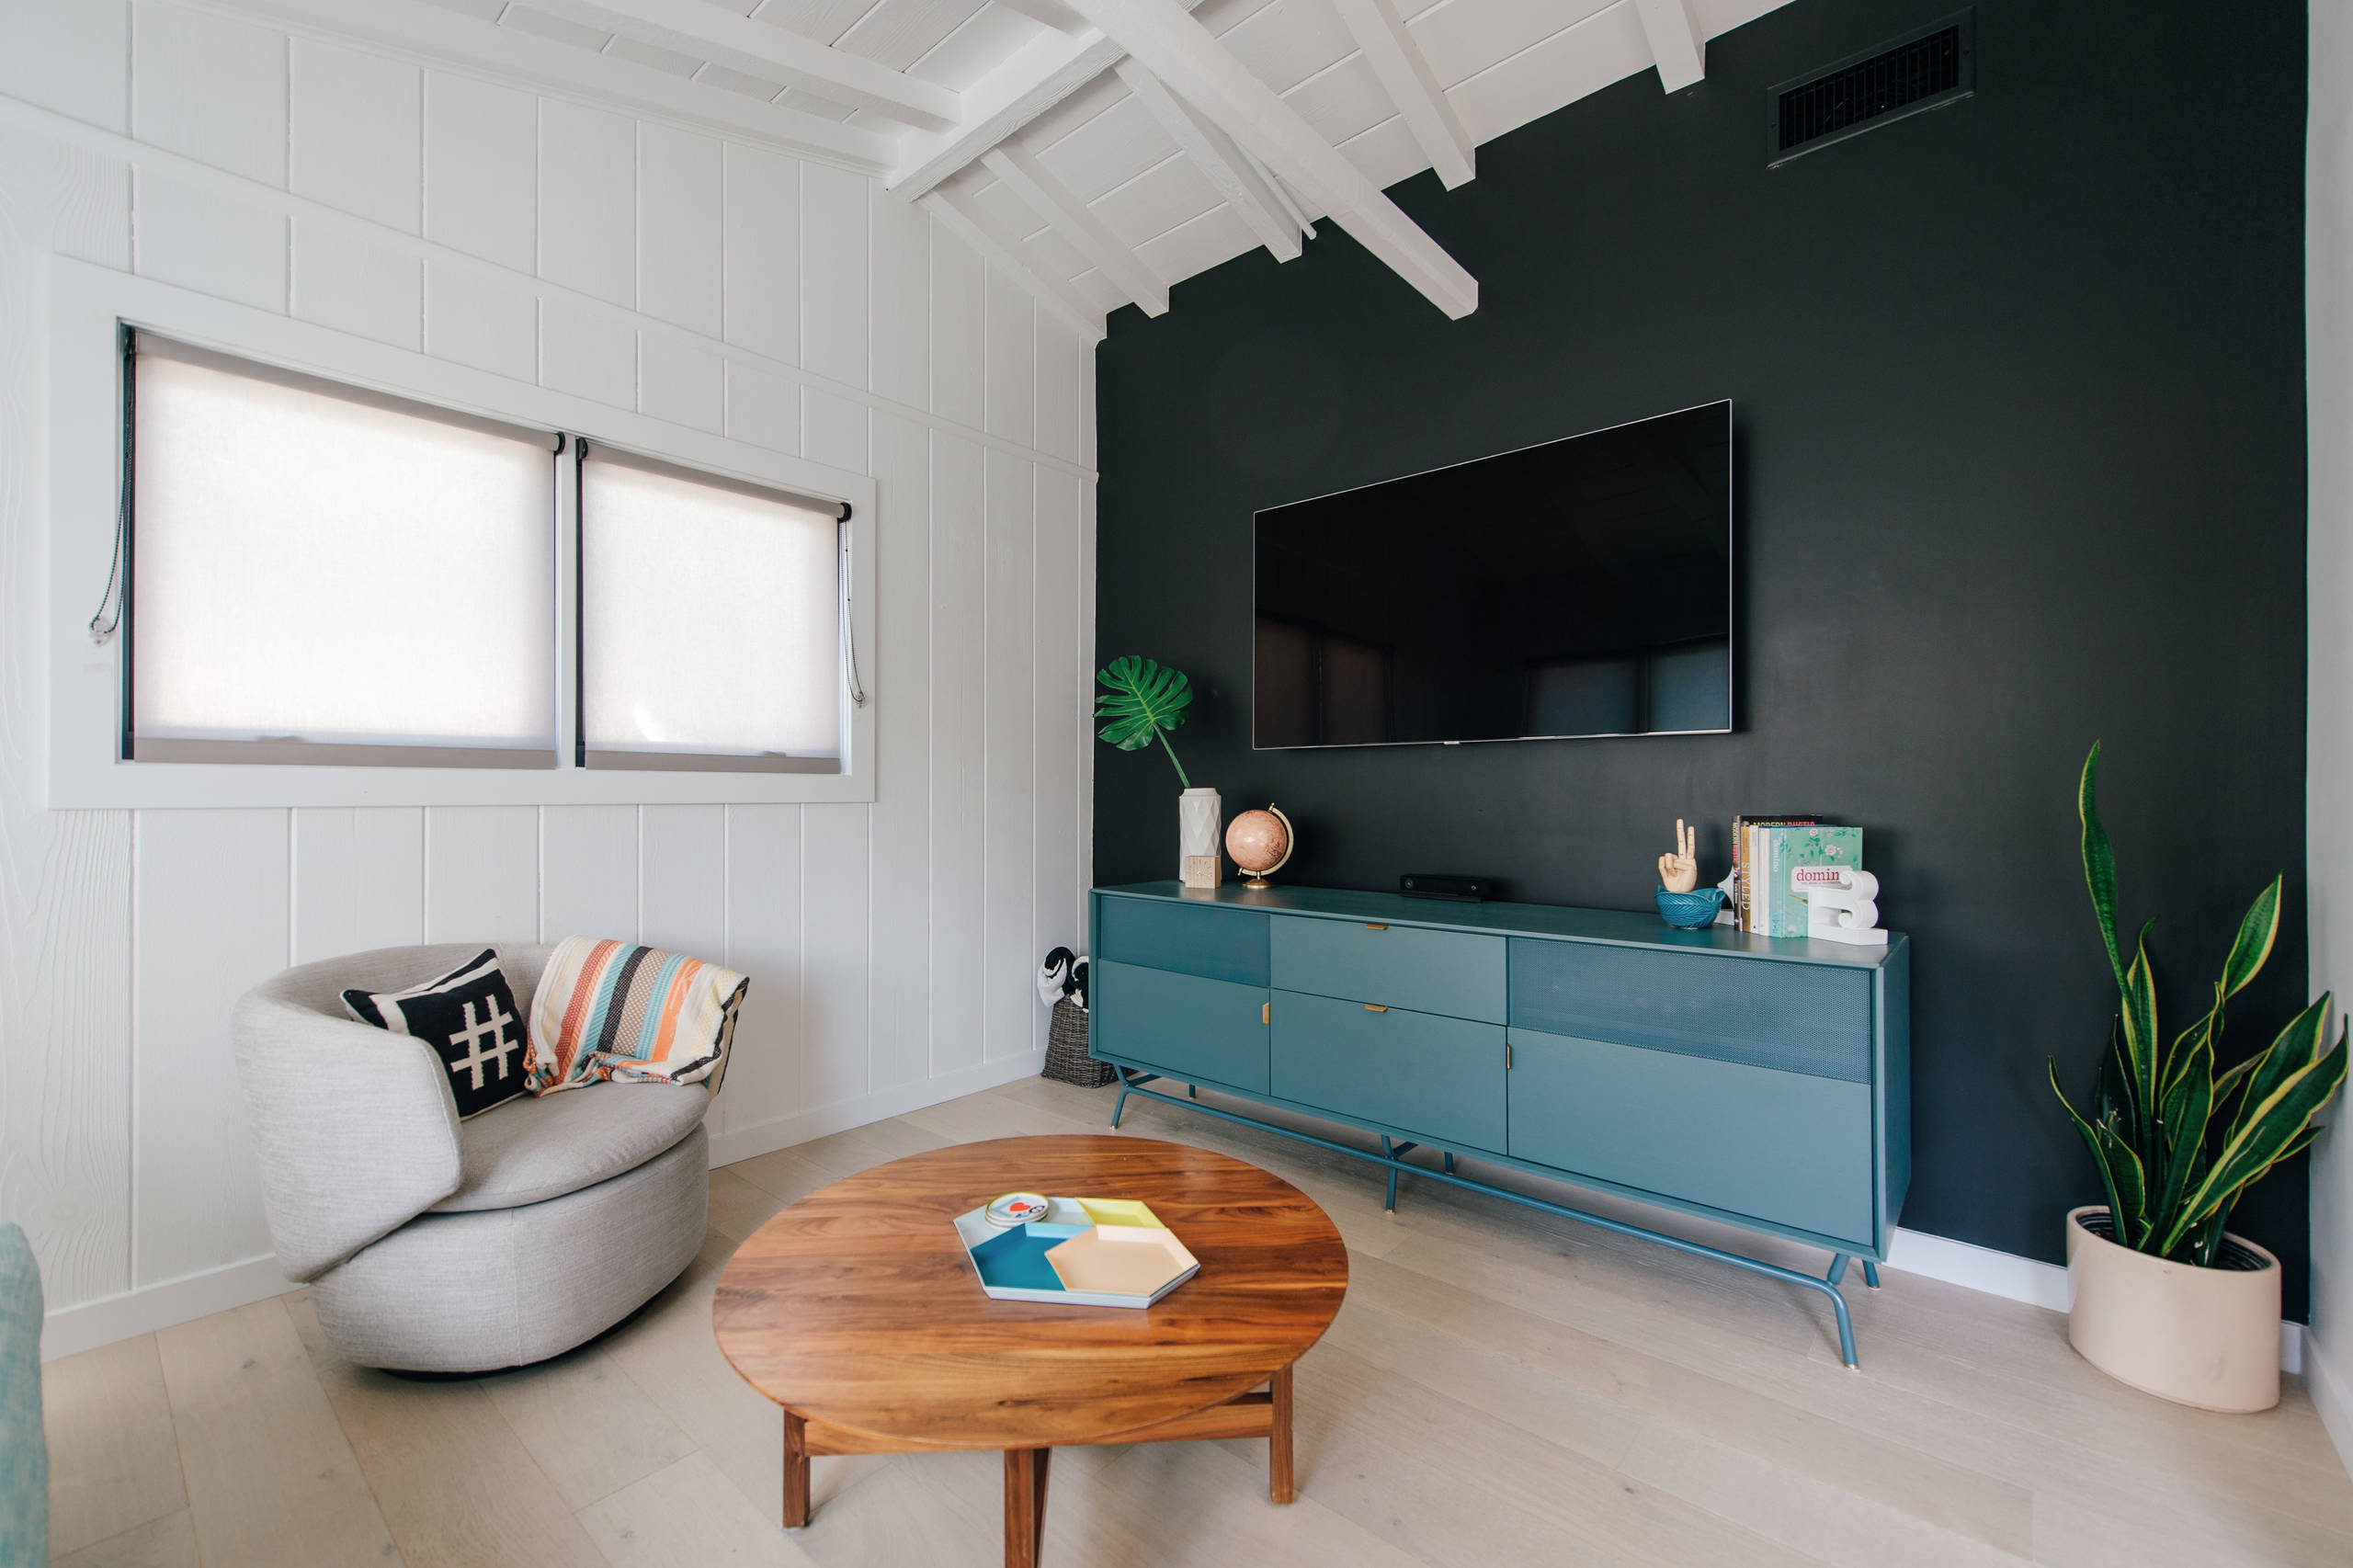 75 Beautiful Small Game Room Pictures Ideas February 2021 Houzz